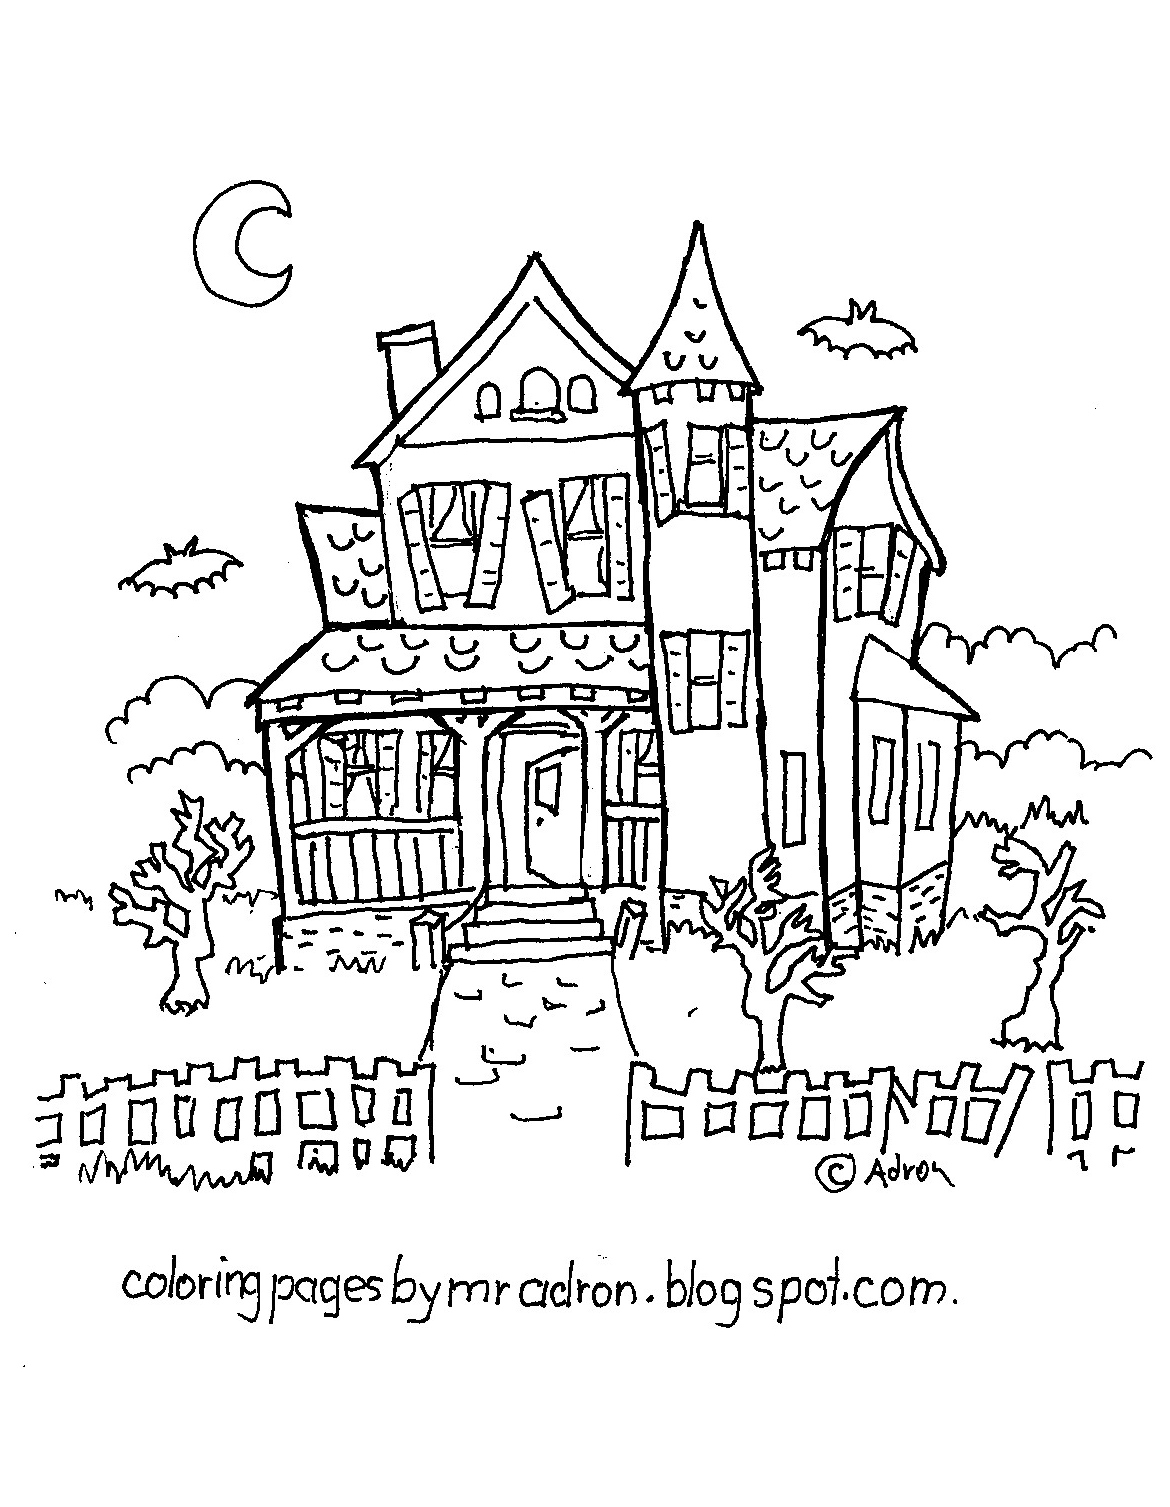 haunted house printable coloring pages coloring pages for kids by mr adron haunted house free printable house coloring pages haunted